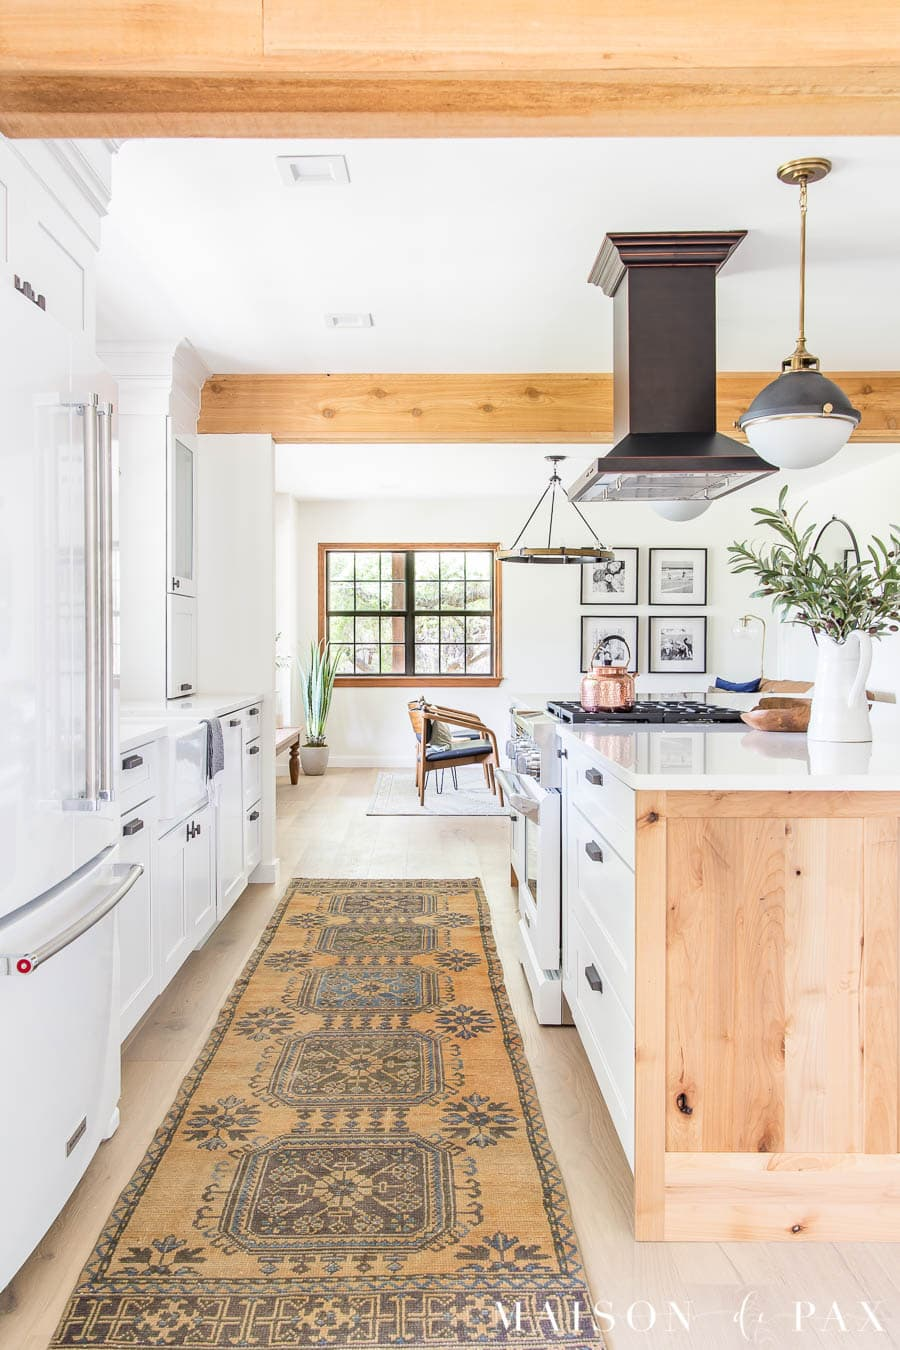 vintage turkish runner in kitchen open to living room | Maison de Pax